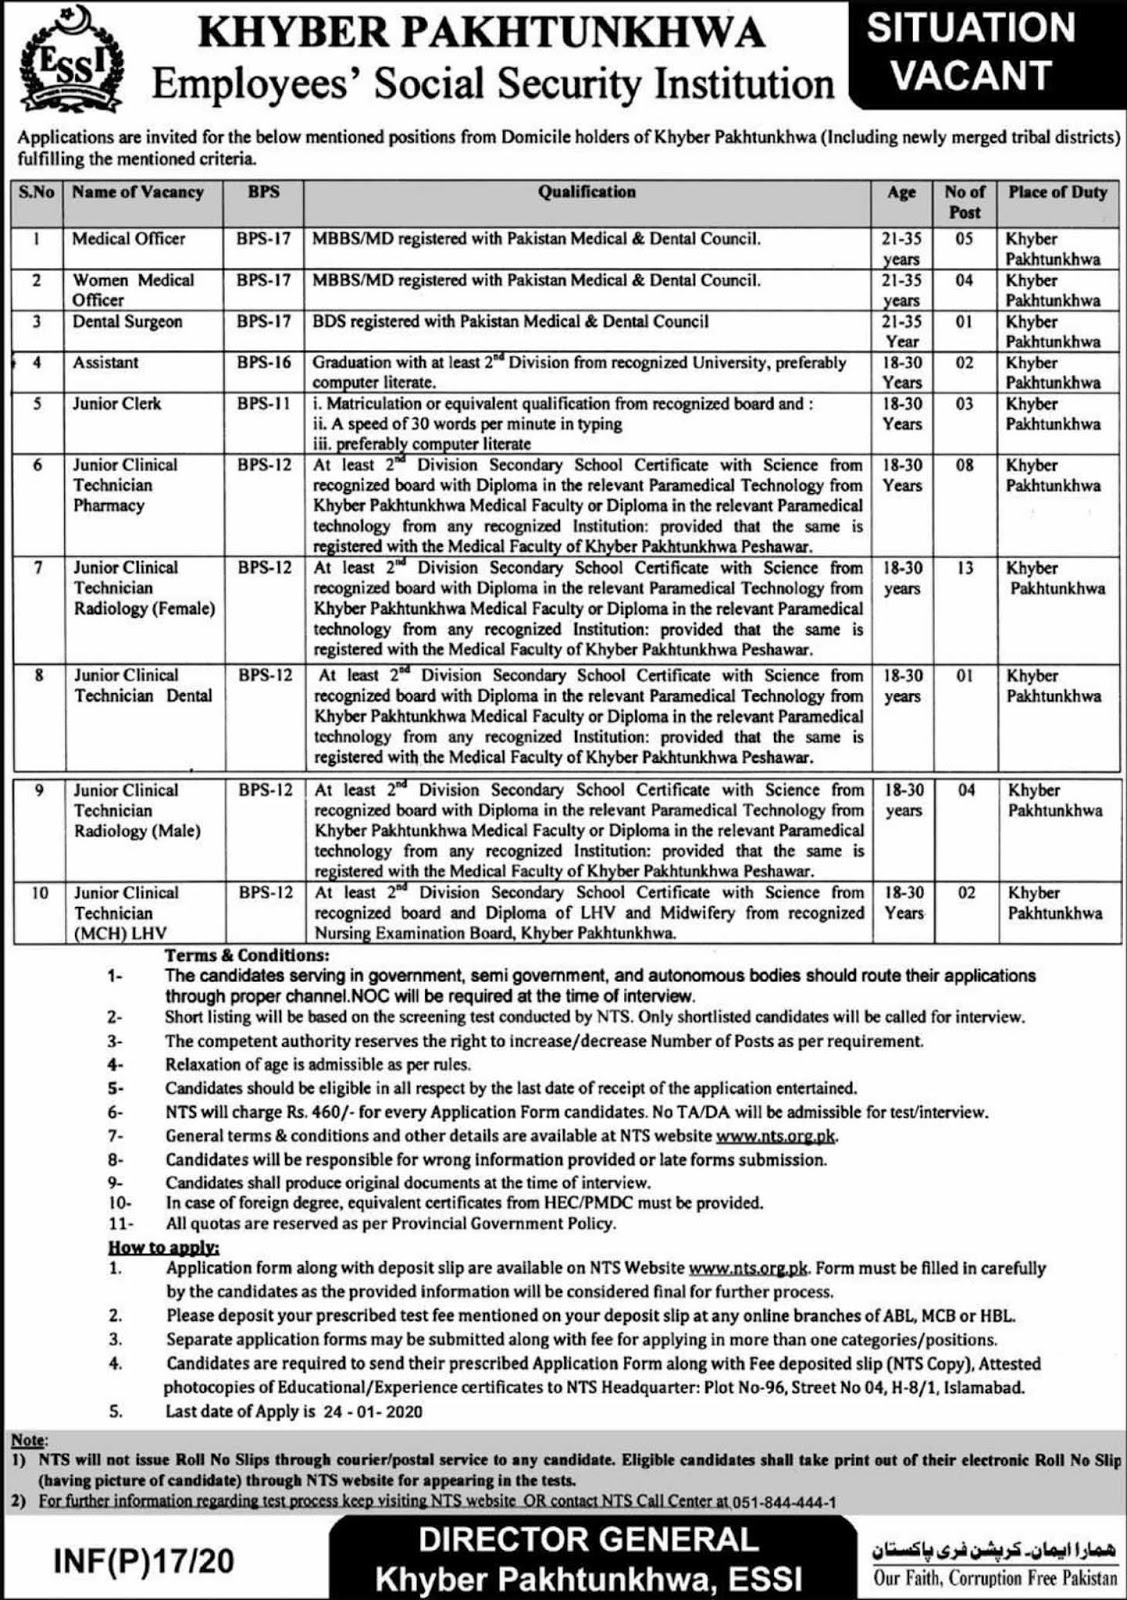 KPK Employees Social Security Institution Jobs 2020